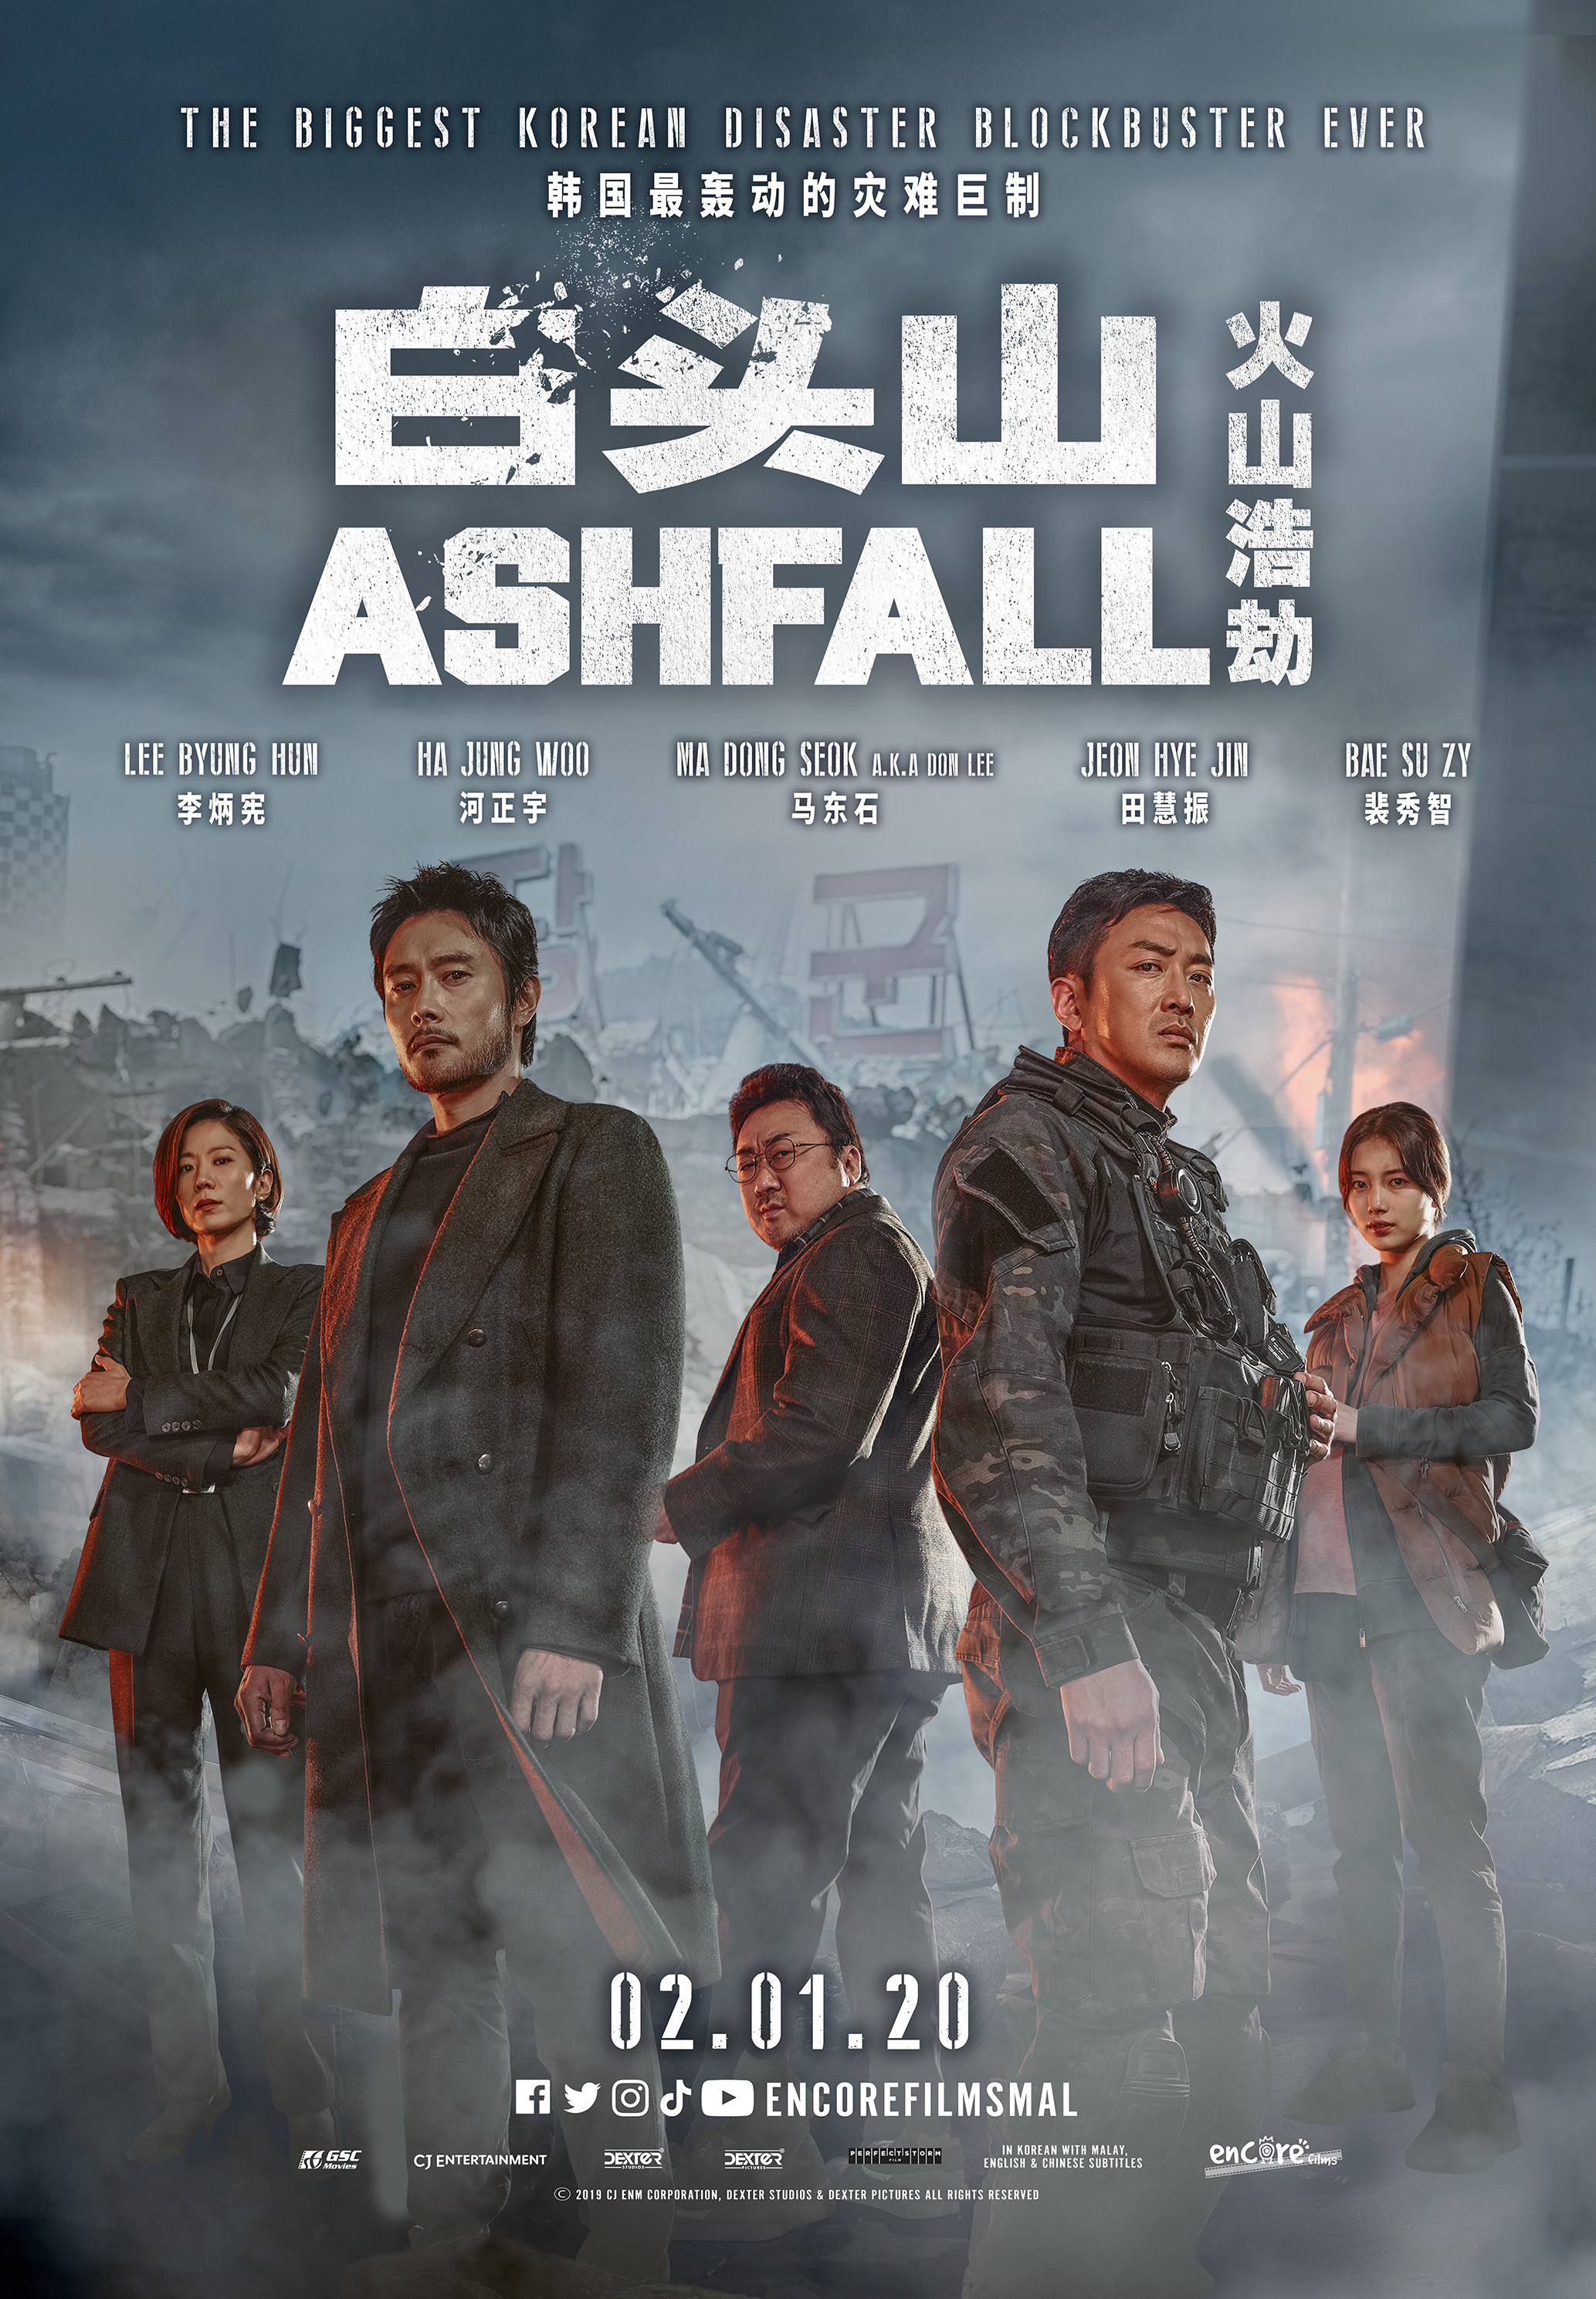 GSC Movies | Ha Jung Woo horror debut in The Closet | Ashfall